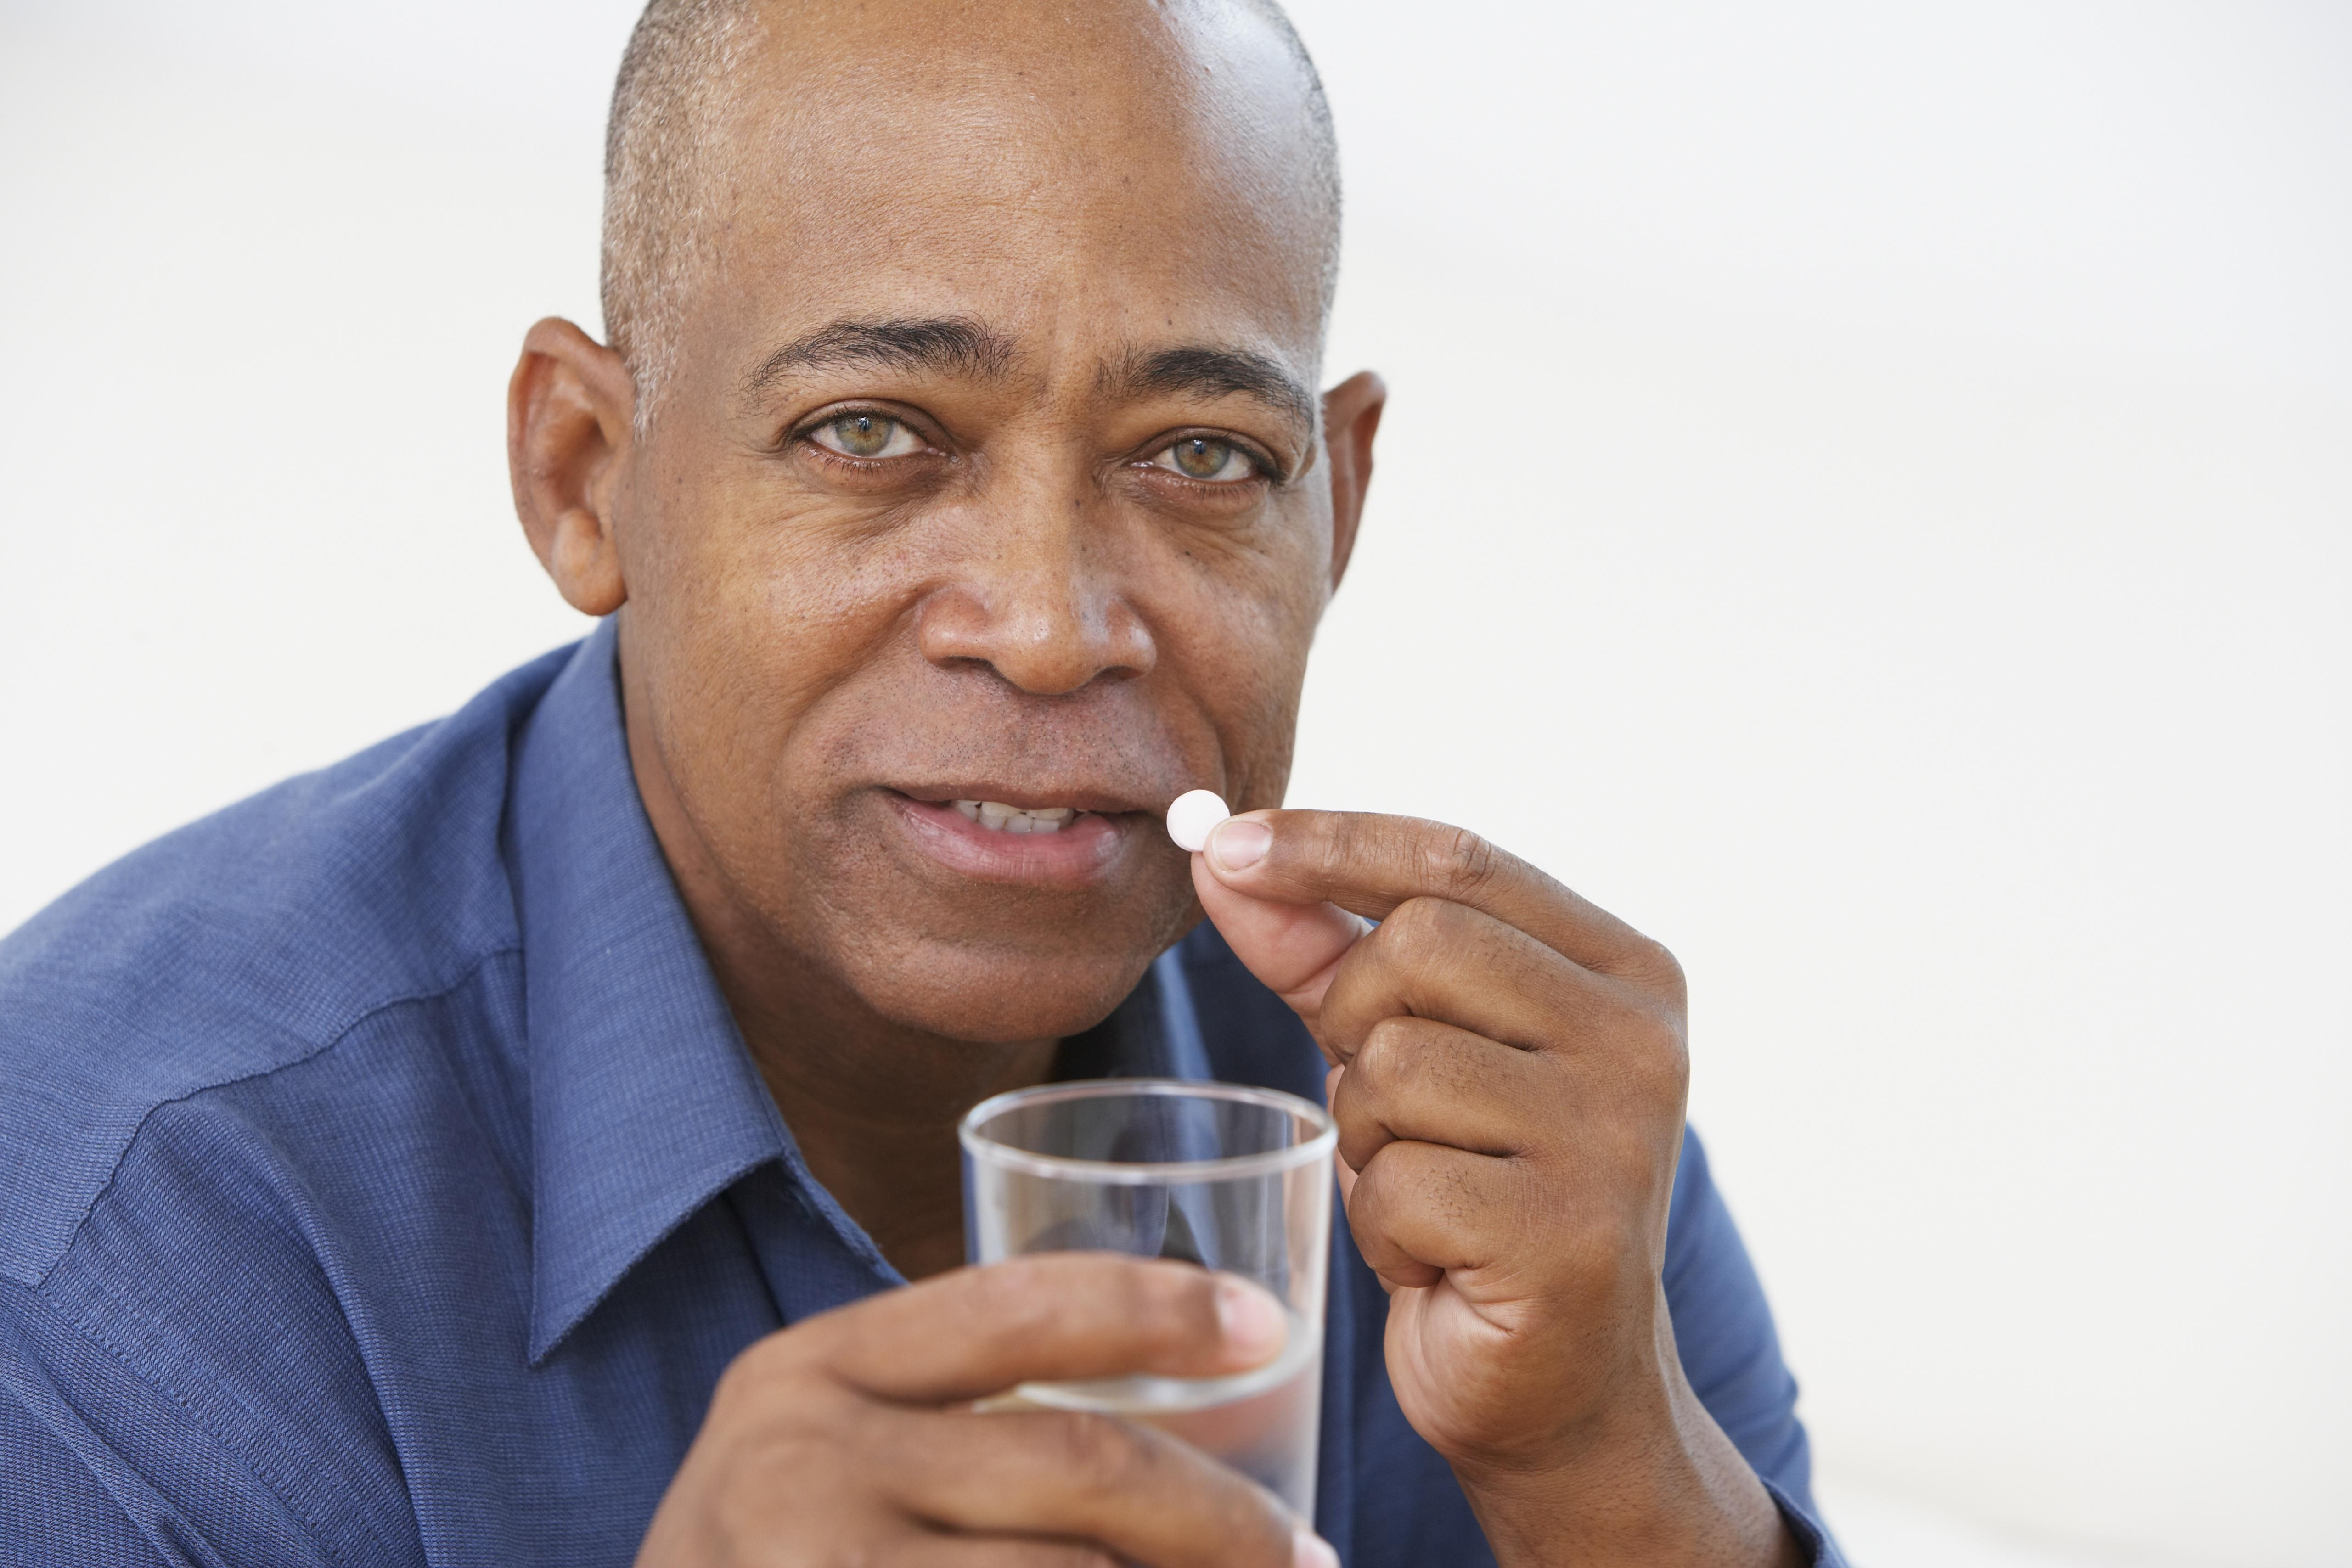 Senior African man taking medication with glass of water